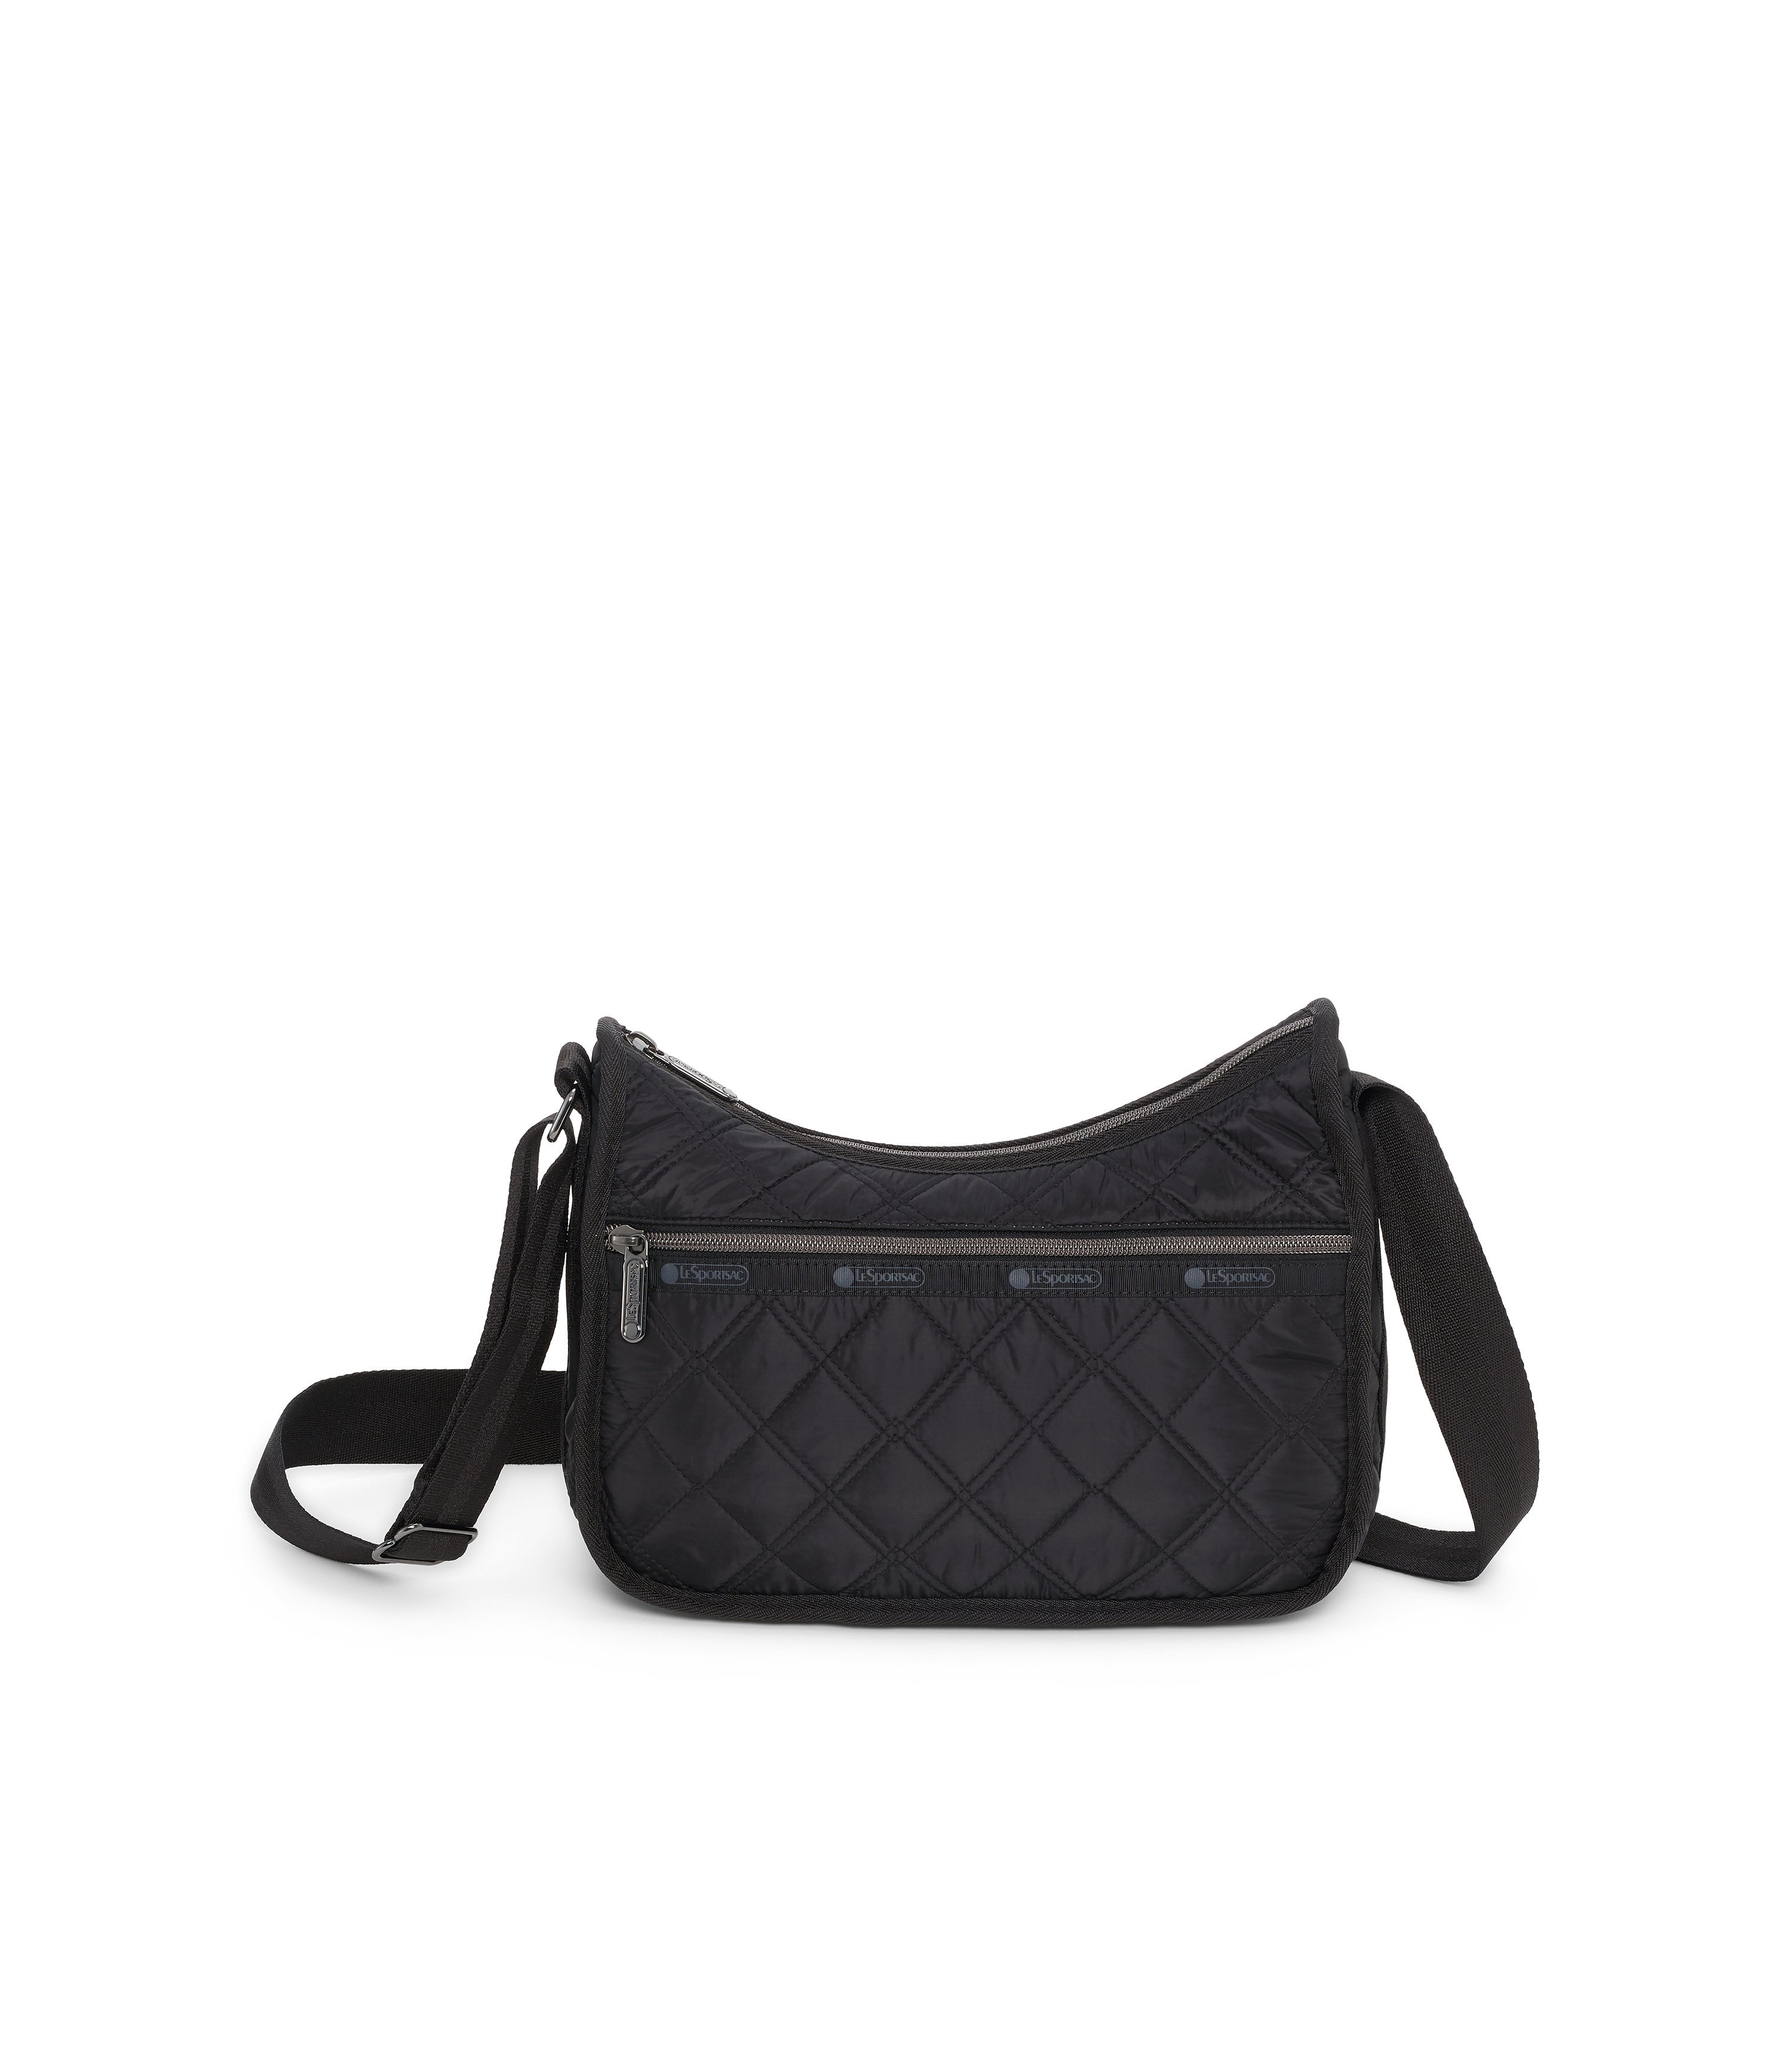 Classic Hobo, Nylon Handbags and Classic Purses, LeSportsac, Matelasse Black Quilted